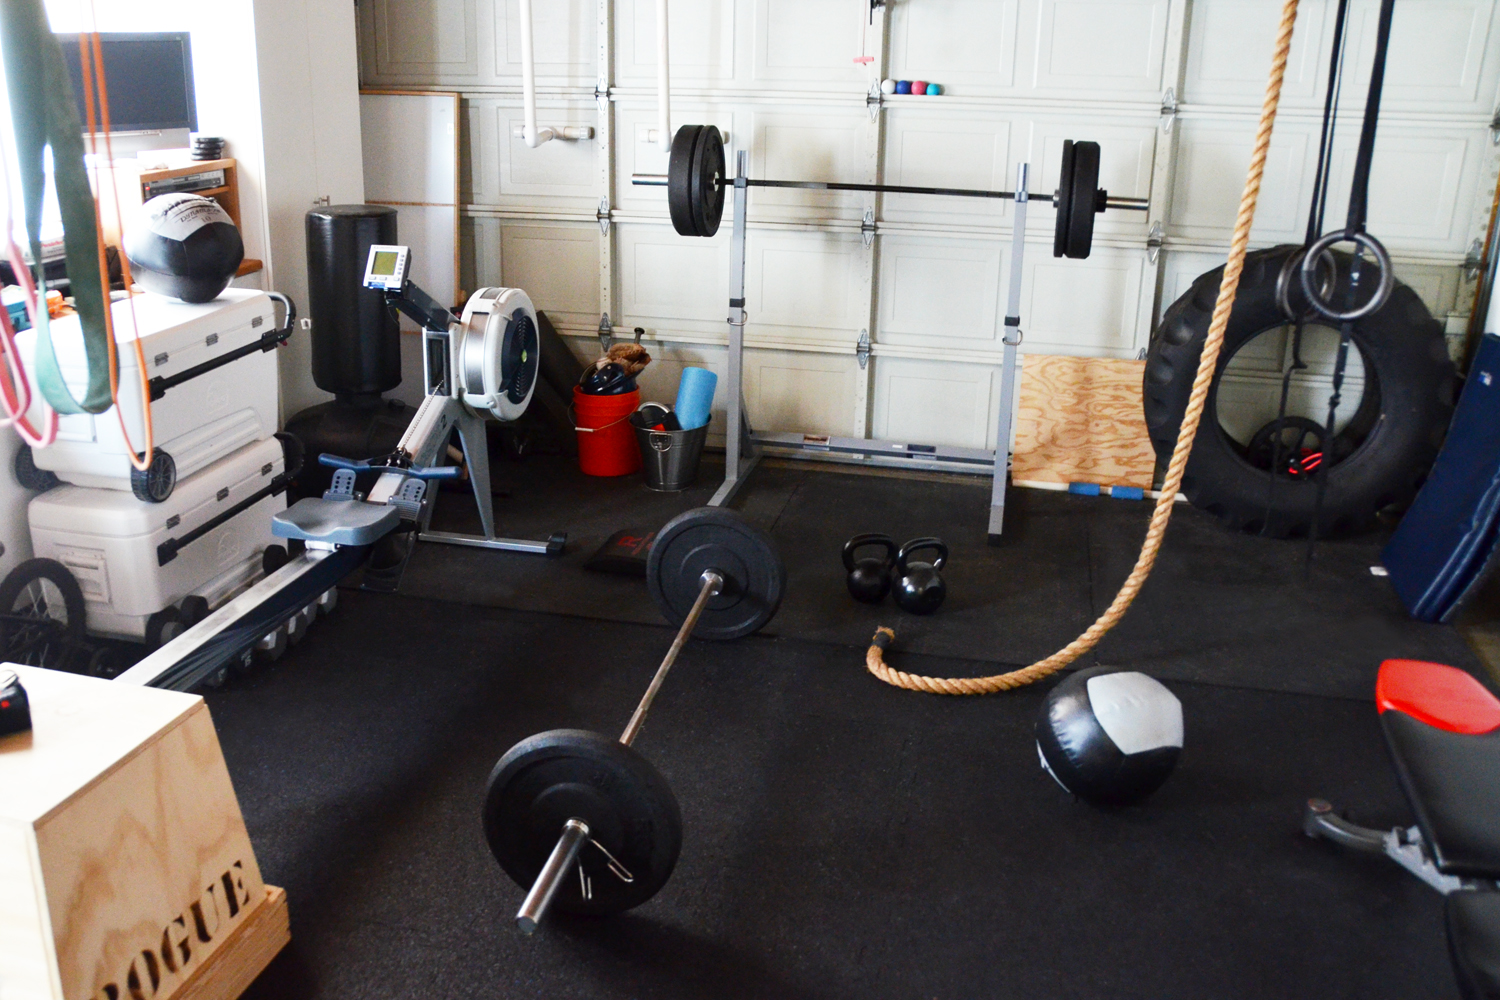 Fitbomb home sweet home gym - Images of home gyms ...